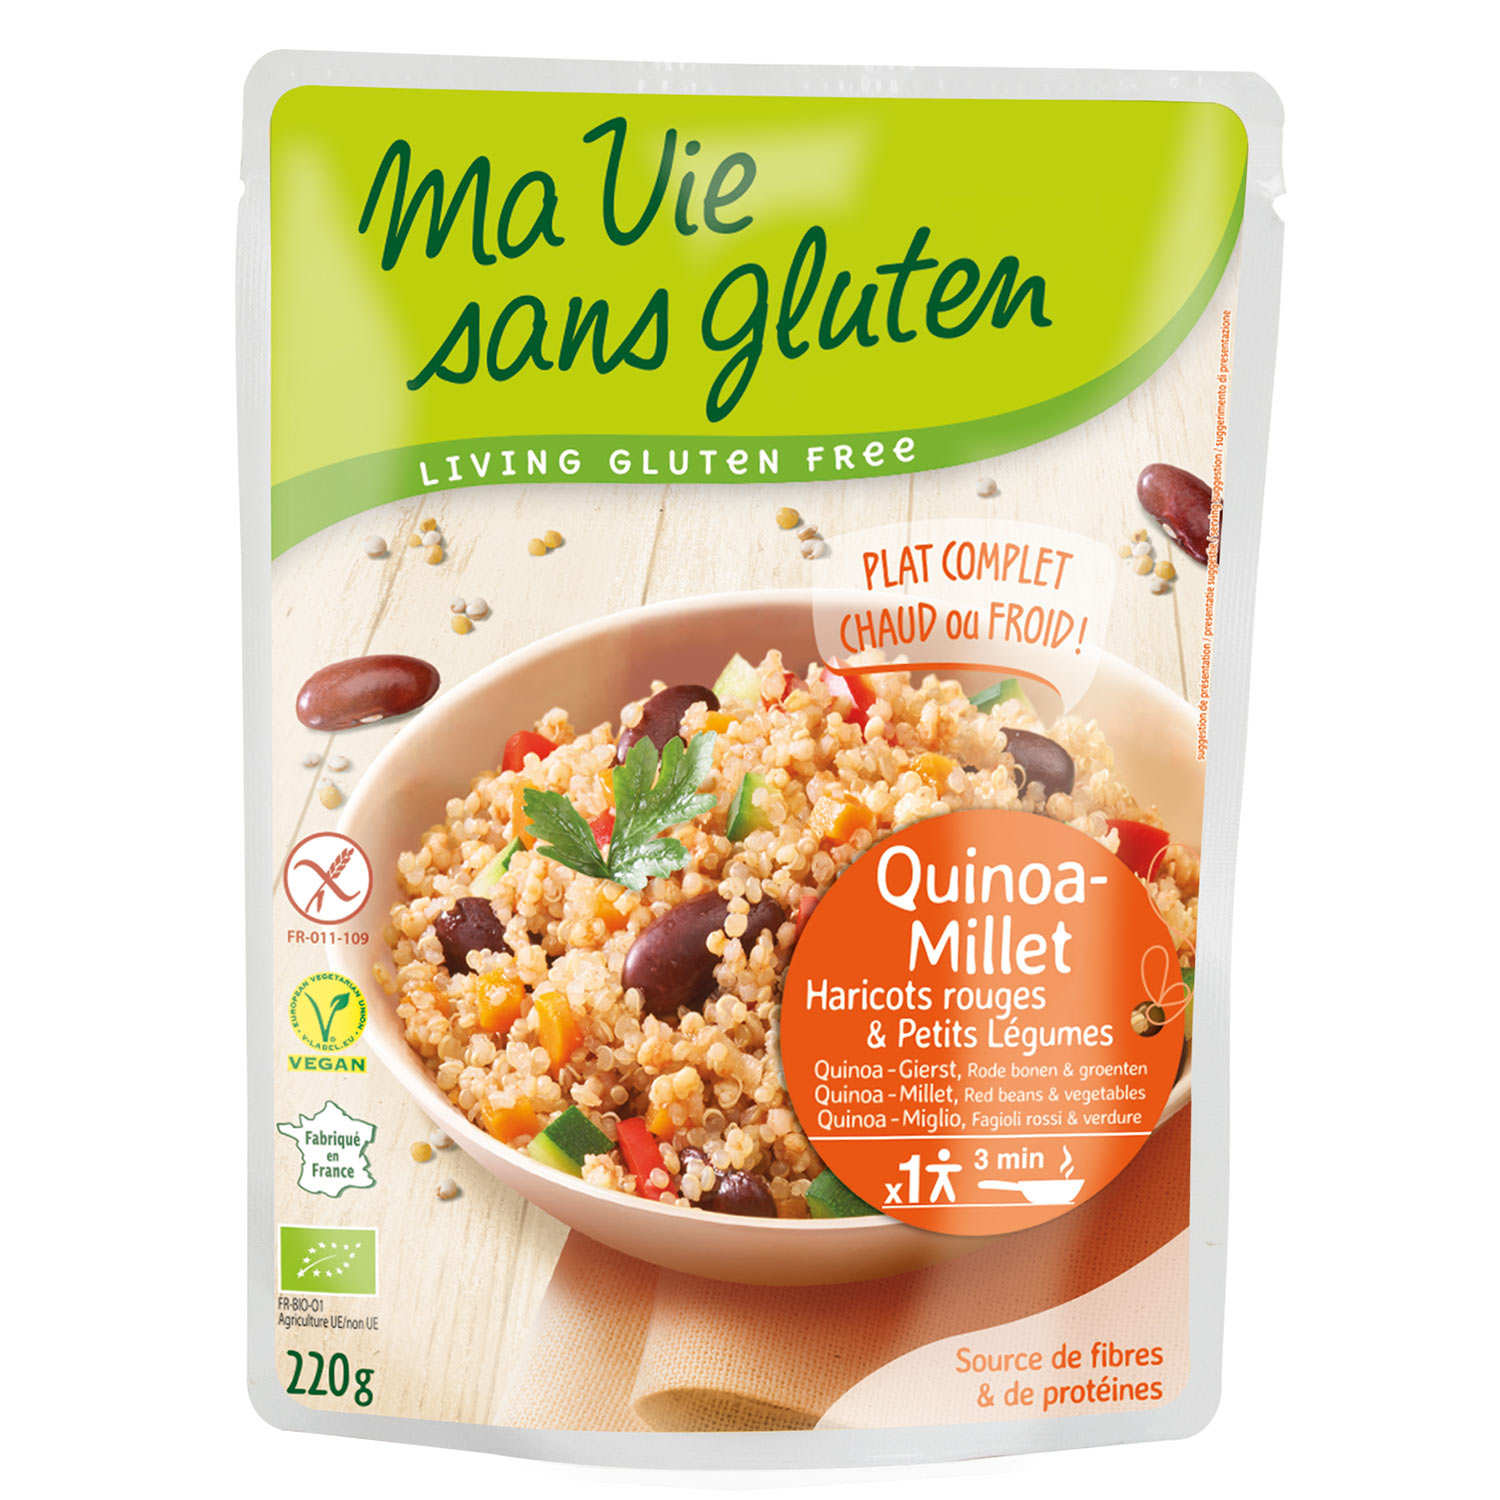 Organic and Gluten Free Pre-Cooked Cereals : Quinoa-Millet, Red Beans, Vegetables